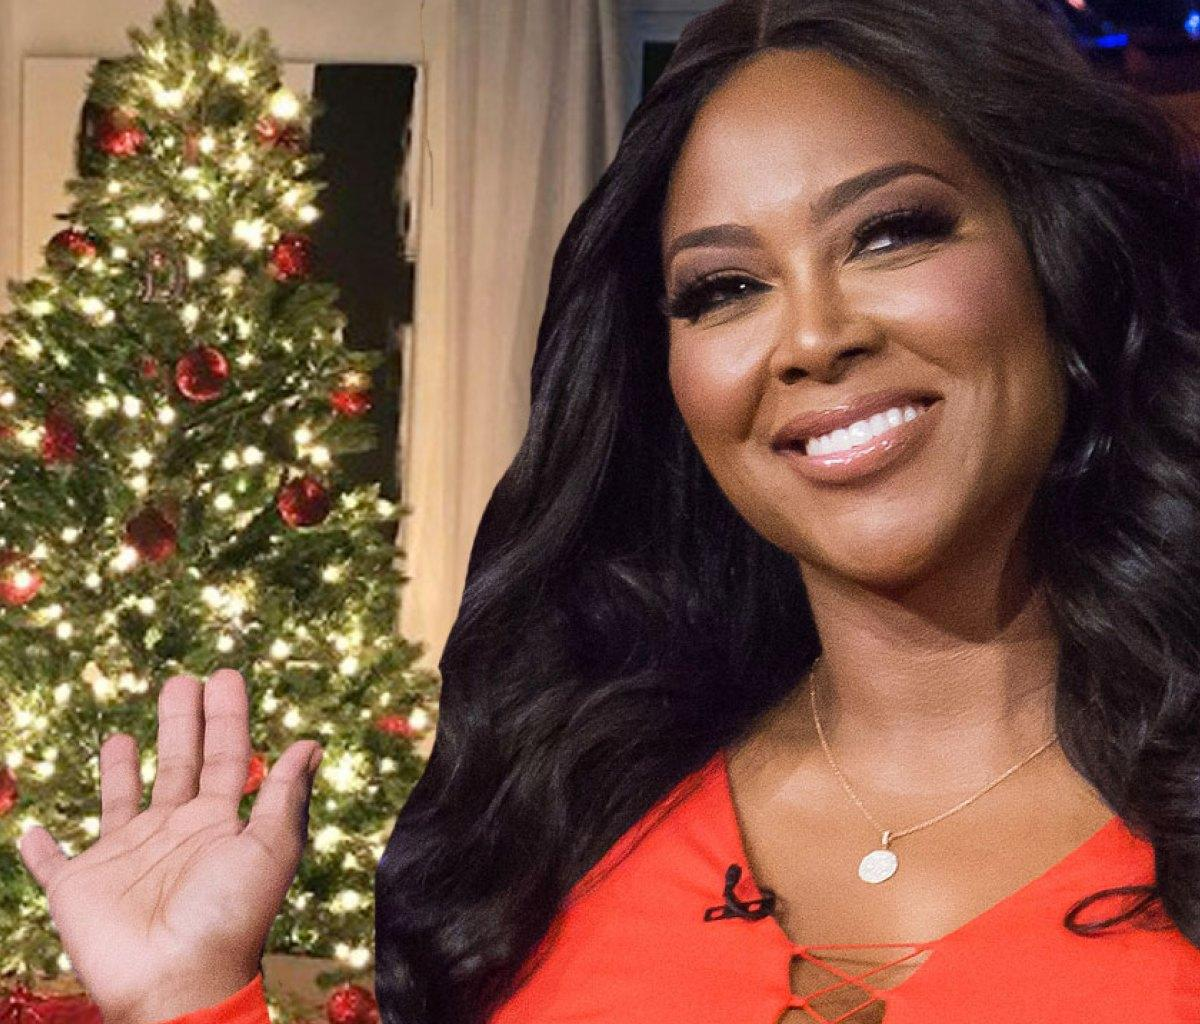 Kenya Moore Shares A New Photo With Marc Daly And Their Baby Girl, Brooklyn And Fans Are In Awe